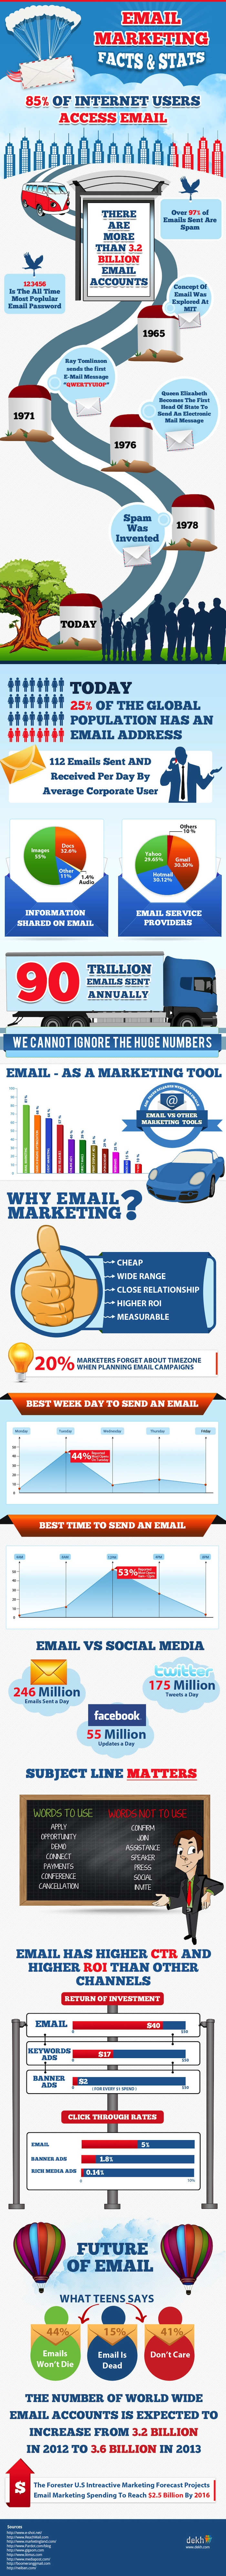 email-marketing-2013-and-beyond 51a49a7e73305